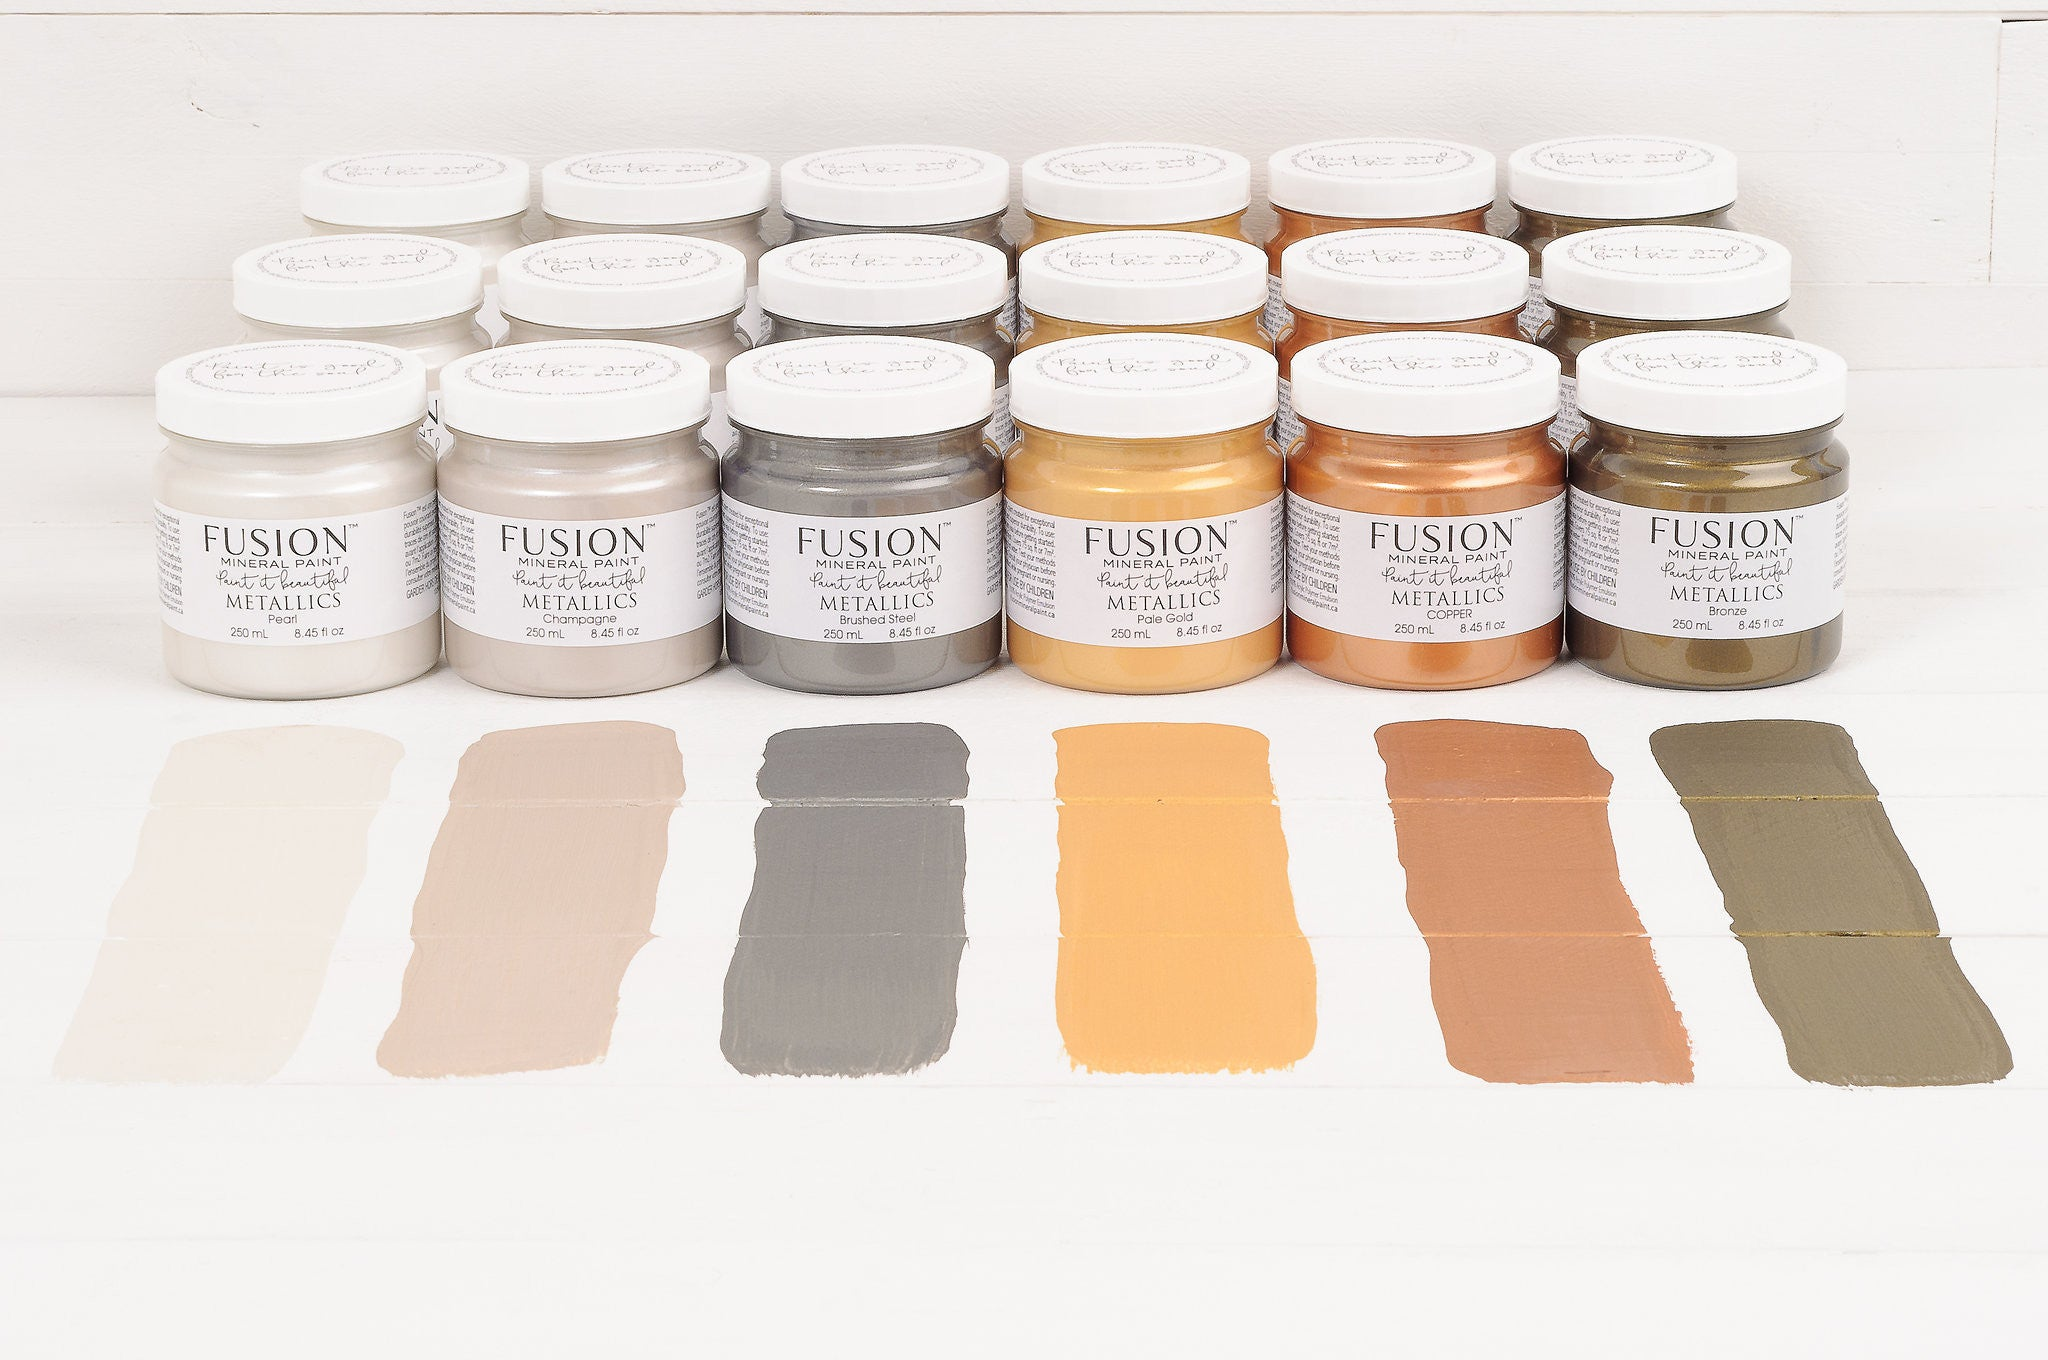 Champagne Metallic Paint - Fusion Mineral Paint - Where to Buy Online - Dear Olympia - Flate Rate US Shipping